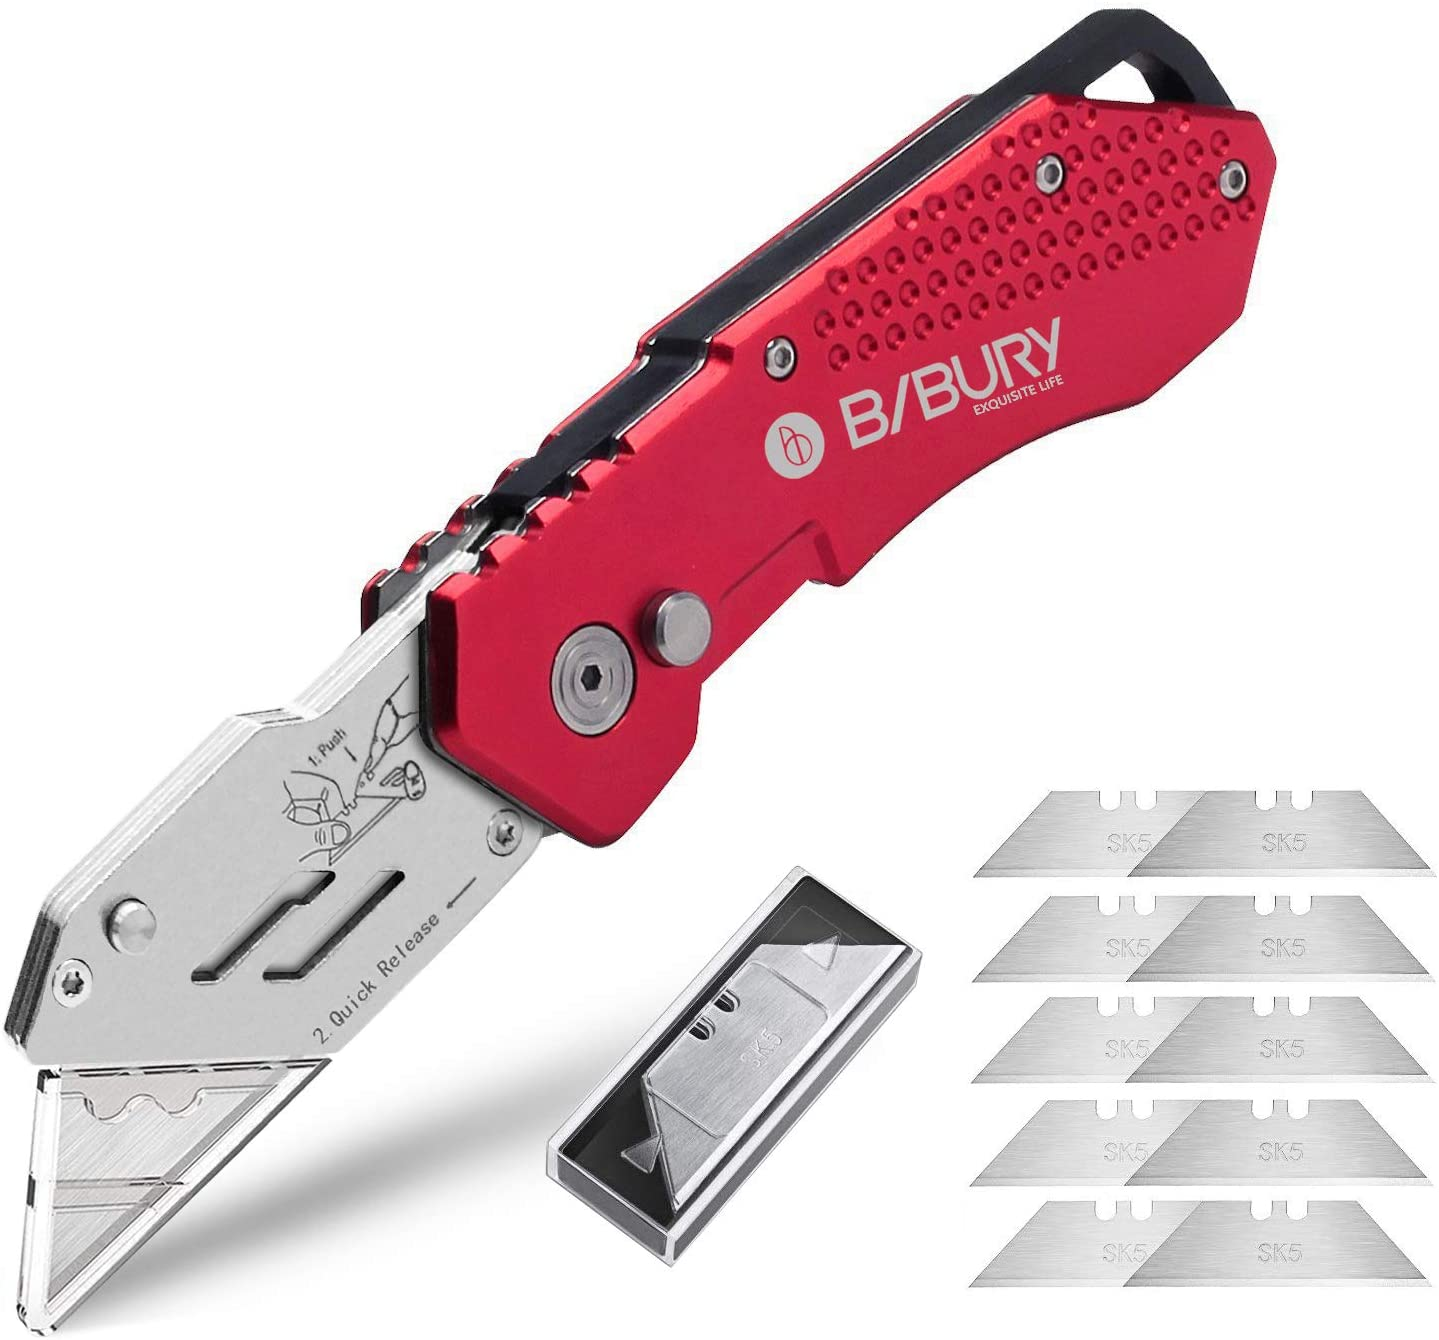 Utility Knife, BIBURY Upgraded Version Heavy Duty Box Cutter Pocket Carpet Knife with 10 Replaceable SK5 Stainless Steel Blades, Belt Clip, Easy Release Button, Quick Change and Lock-Back Design